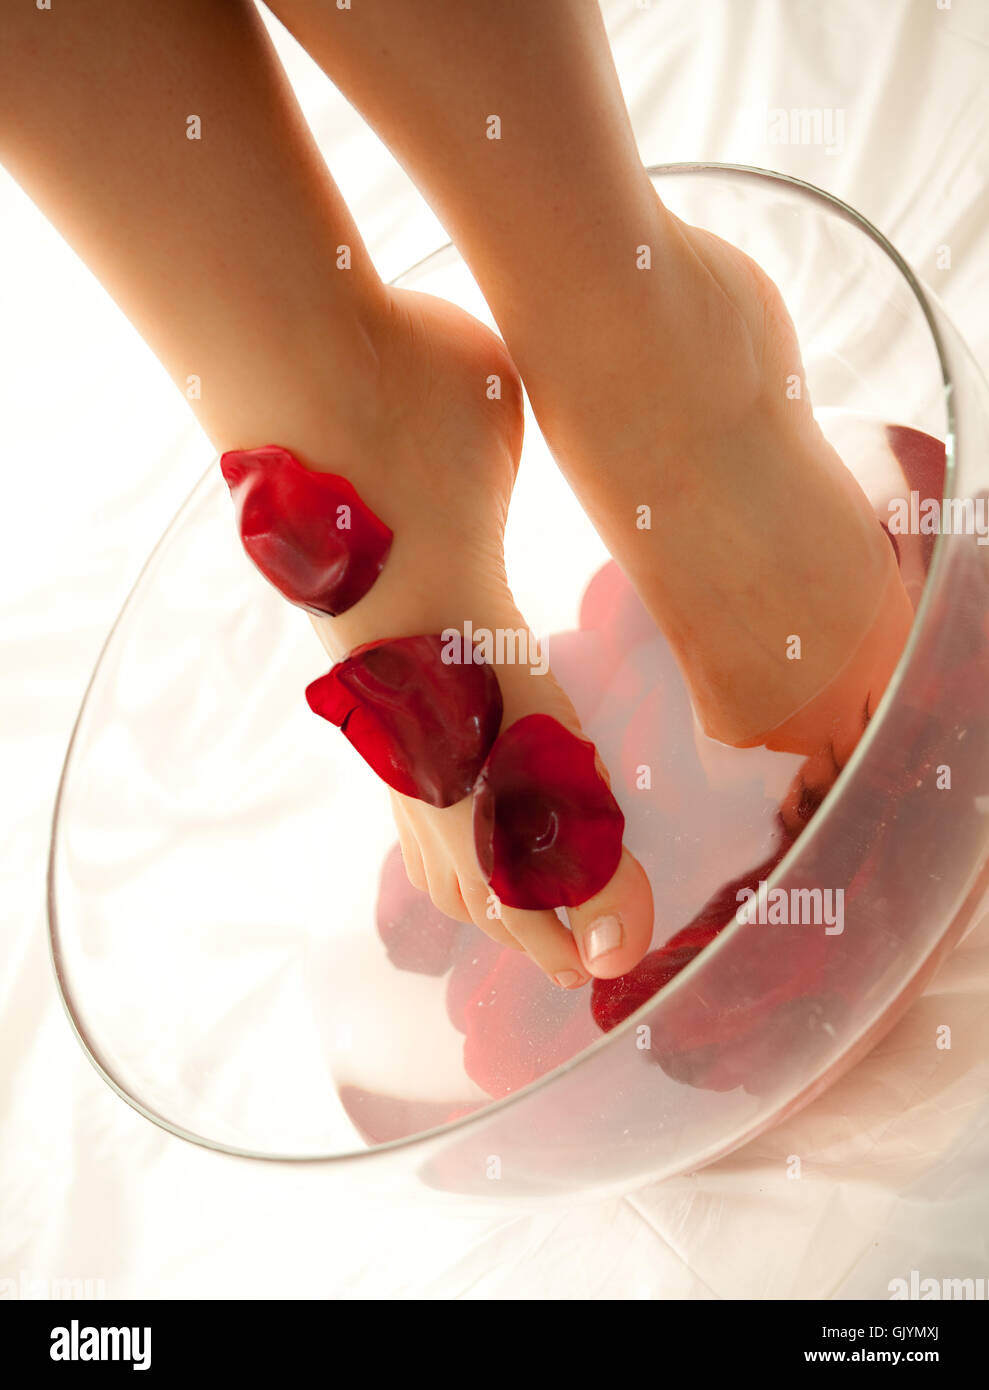 wellness for the feet Stock Photo